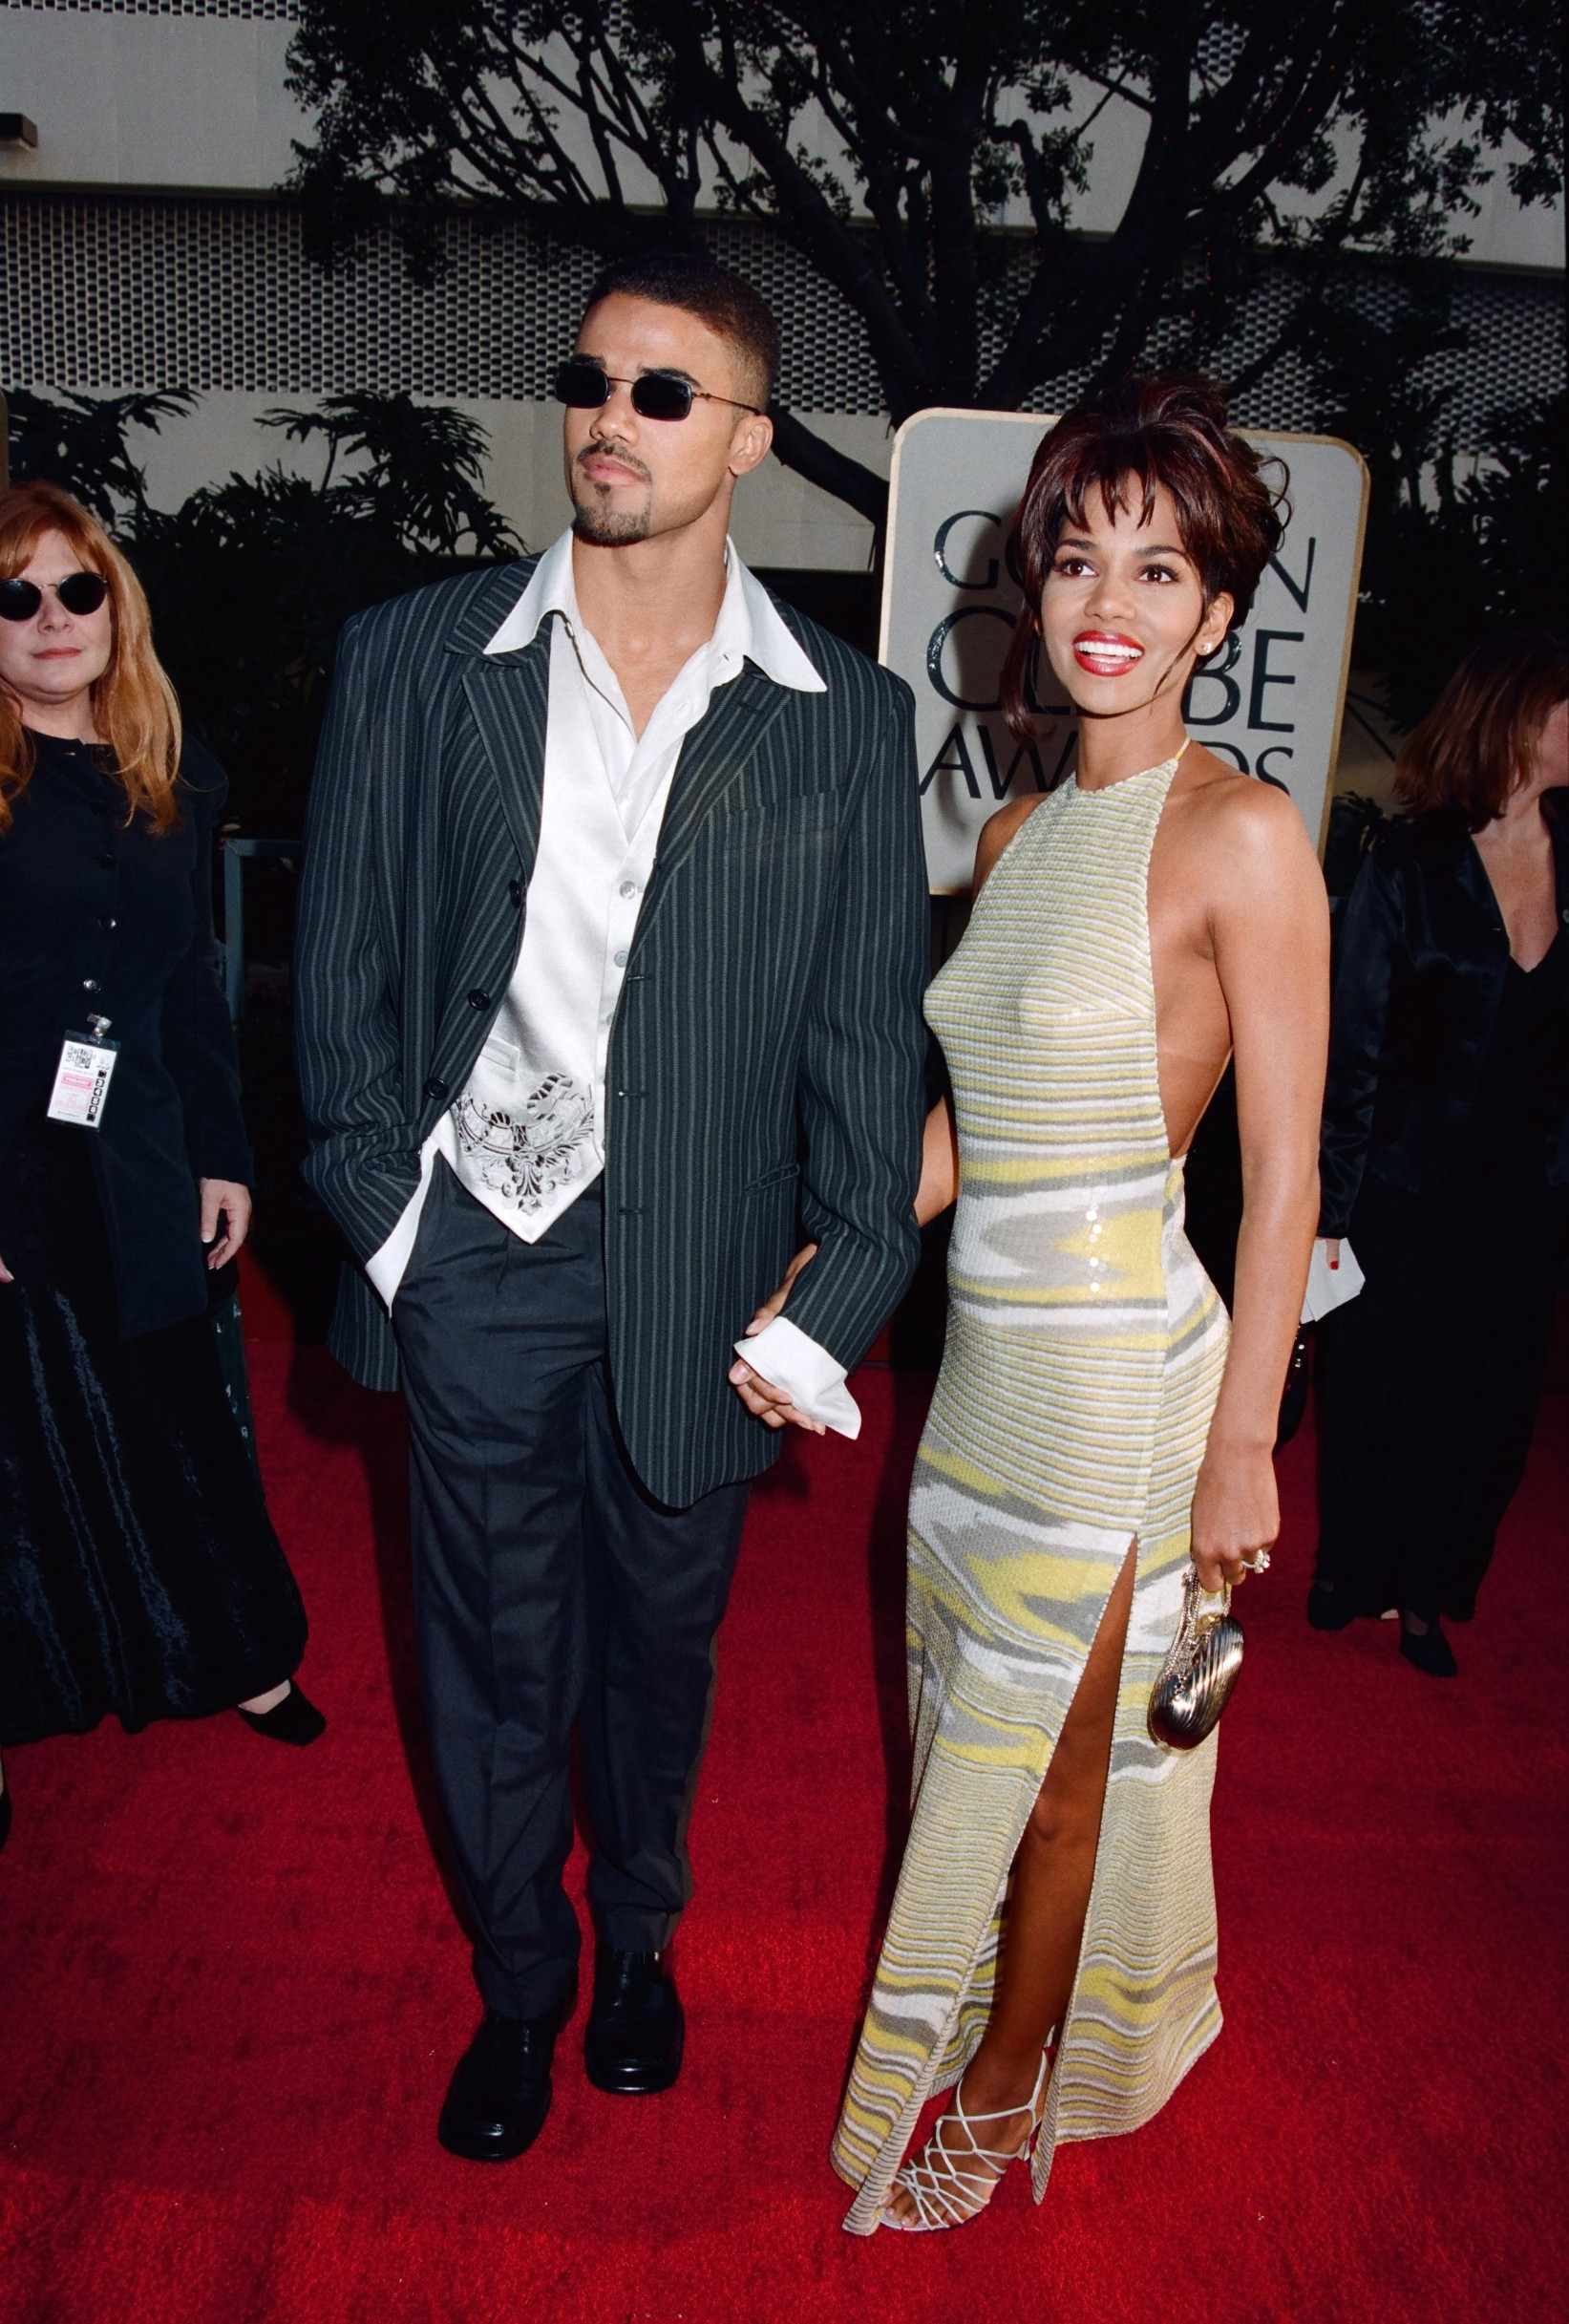 Shemar Moore and Halle Berry at 1997 Golden Globe Awards,Image: 180078481, License: Rights-managed, Restrictions: For Editorial Use Only, Model Release: no, Credit line: The Hollywood Archive / Hollywood Archive / Profimedia